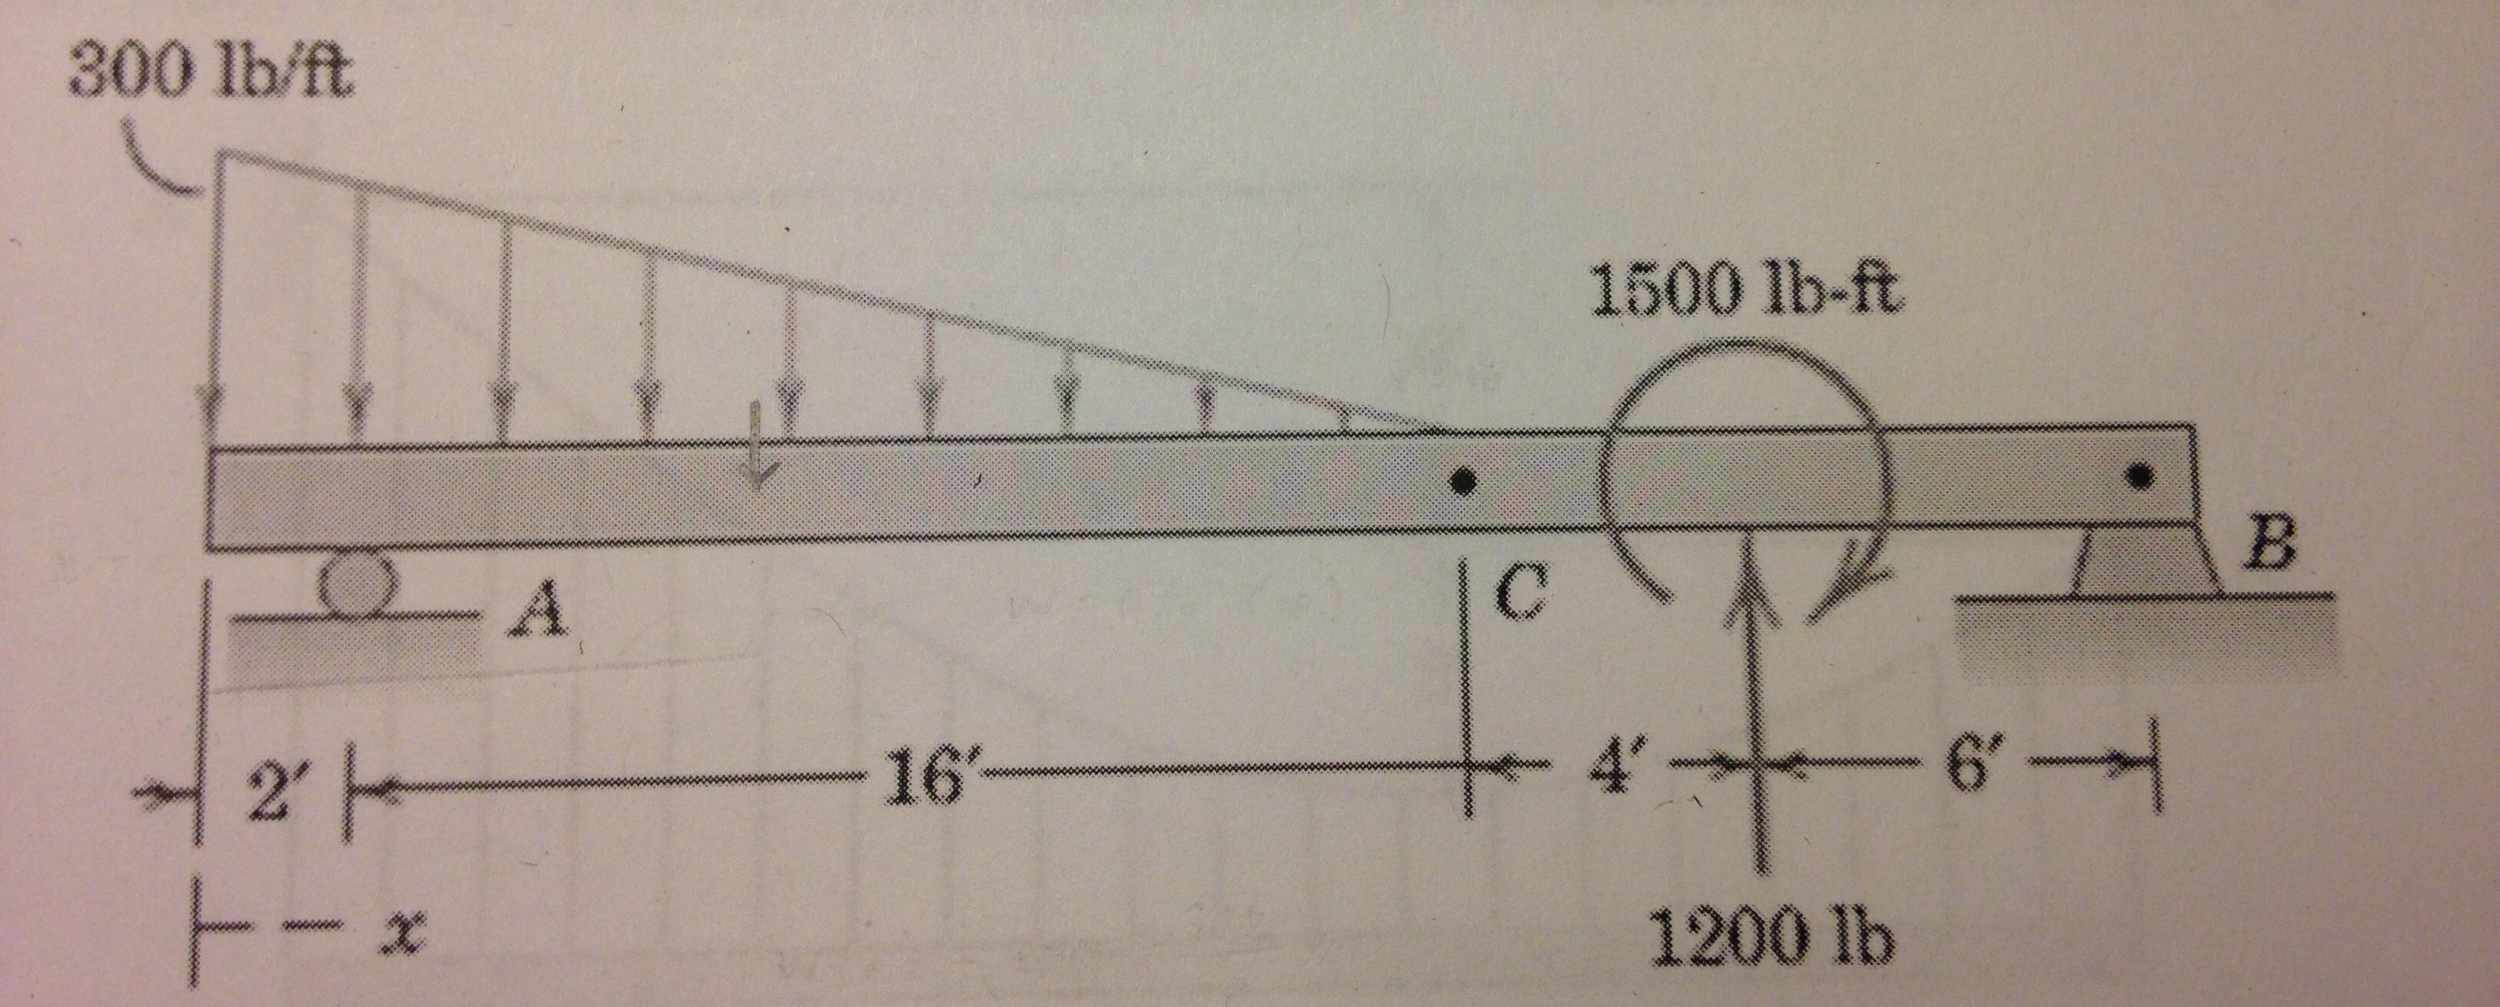 example of max bending moment